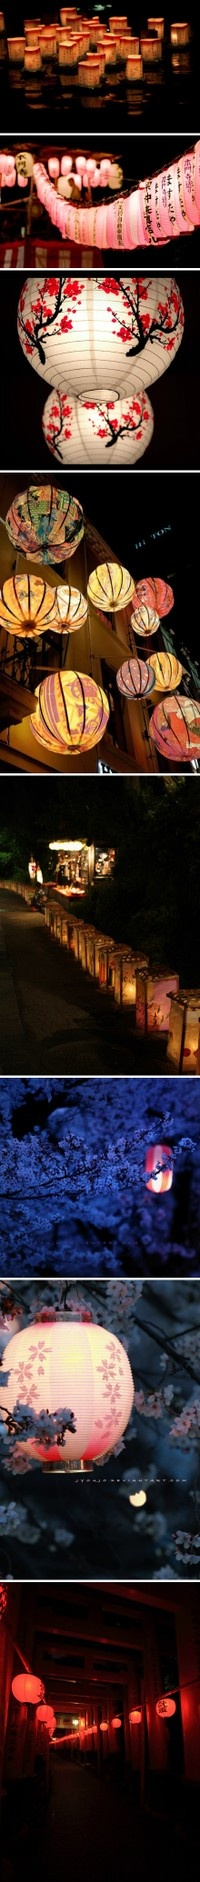 Everything is more romantic by paper lantern light.